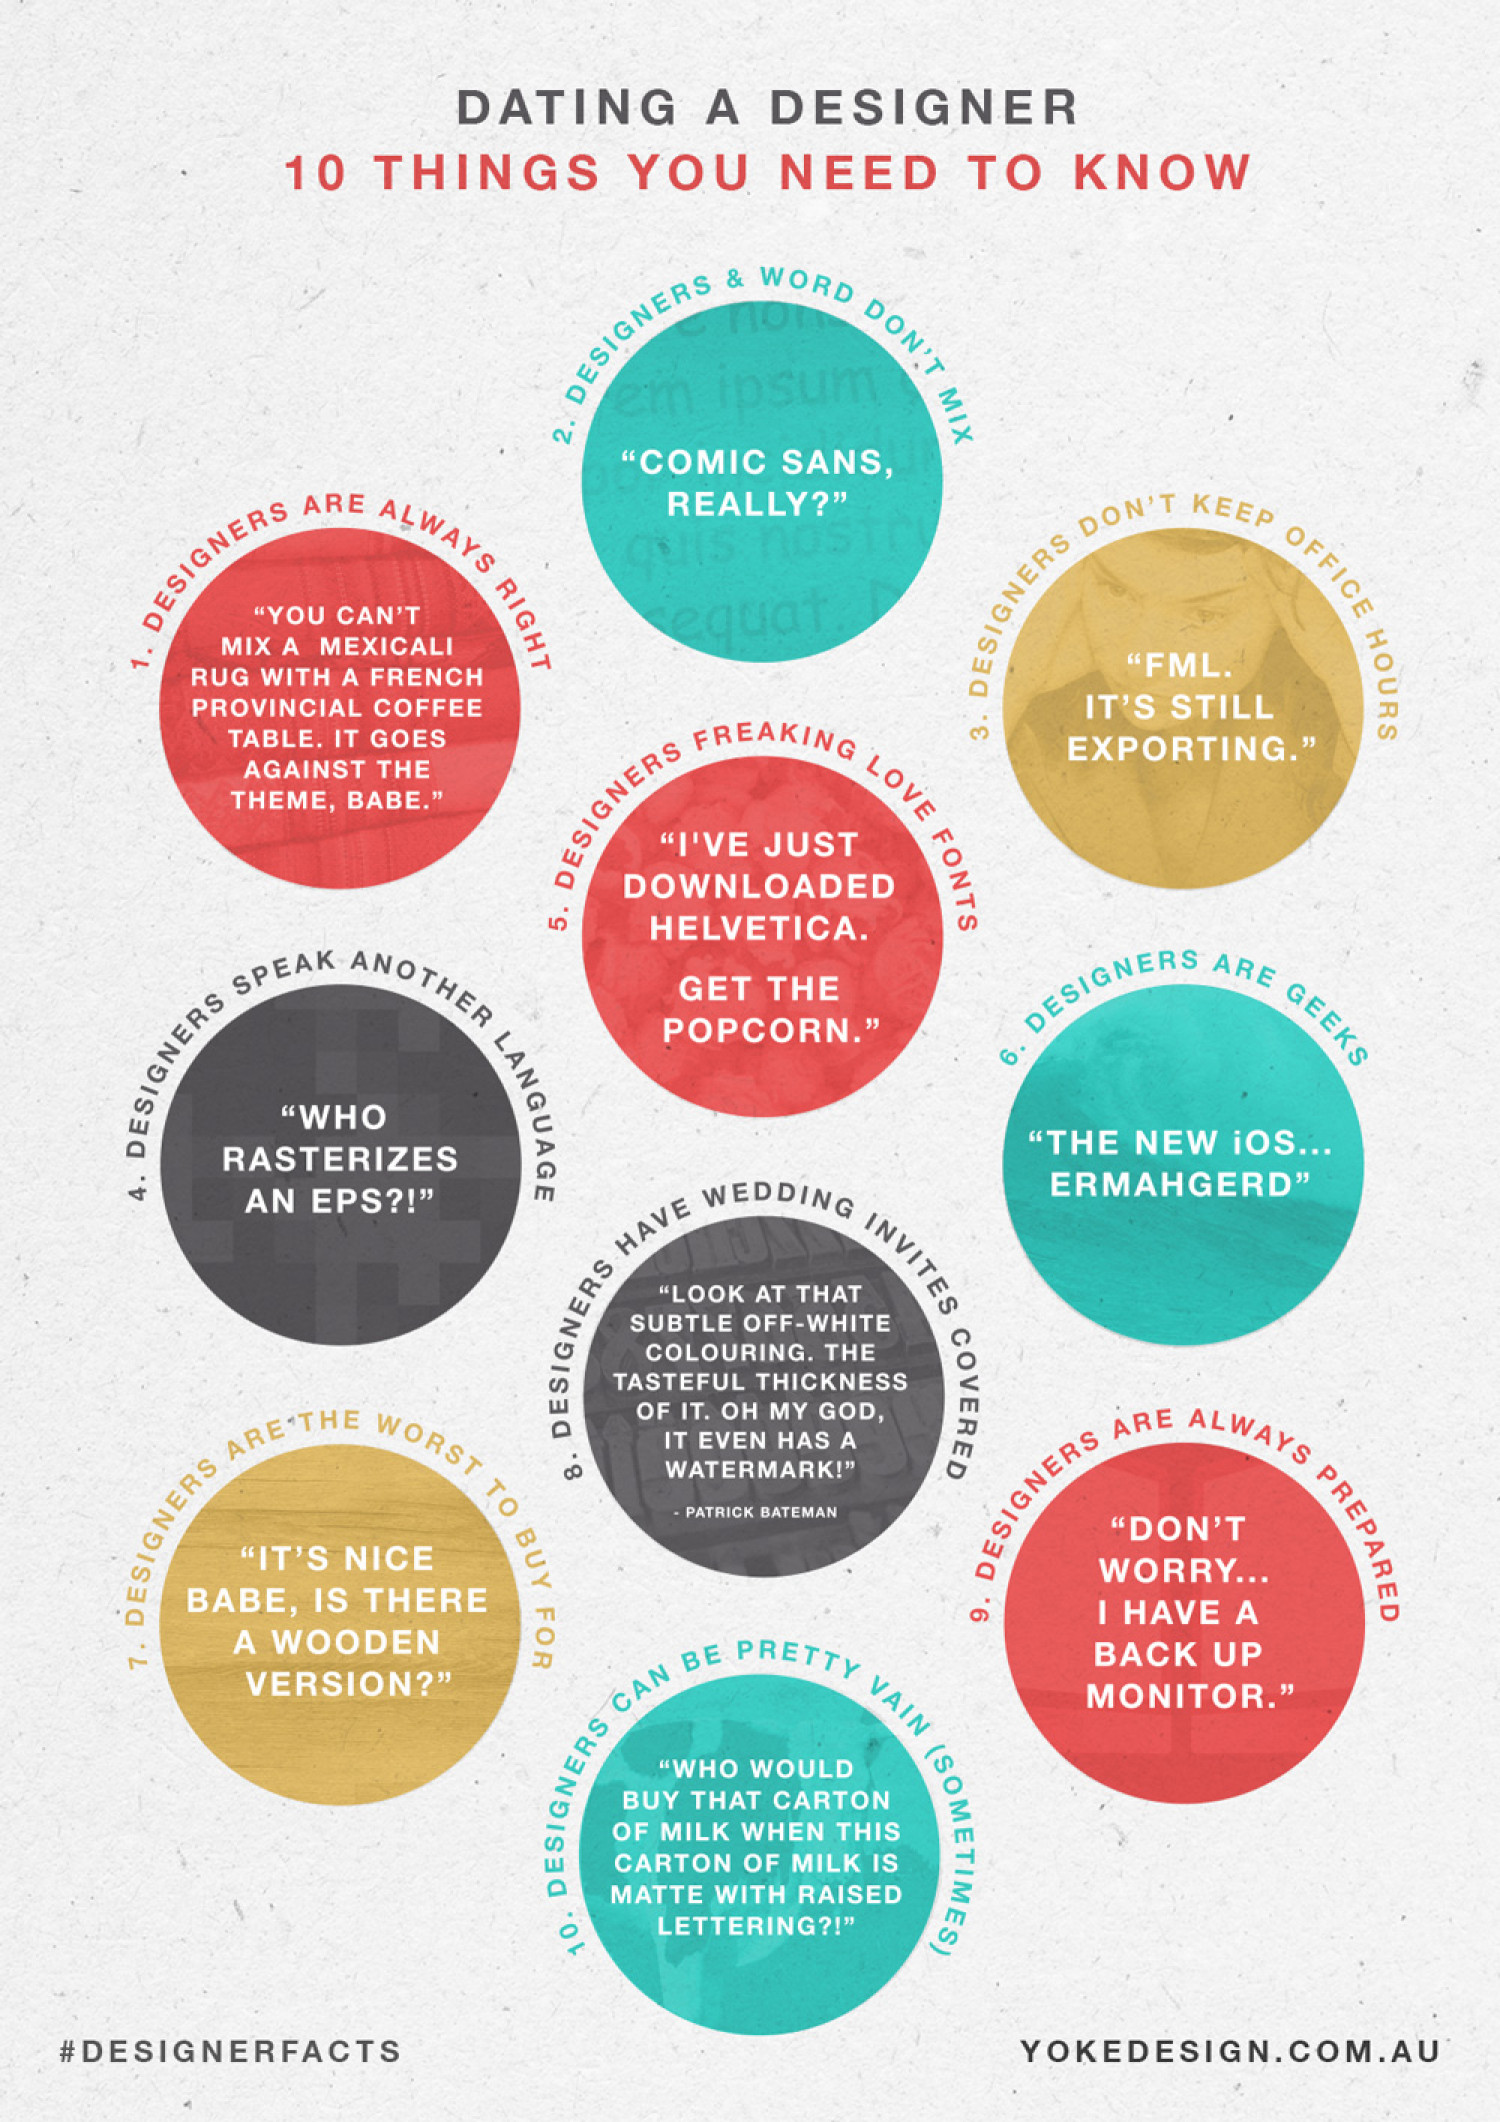 Dating a Designer: 10 Things You Need to Know Infographic